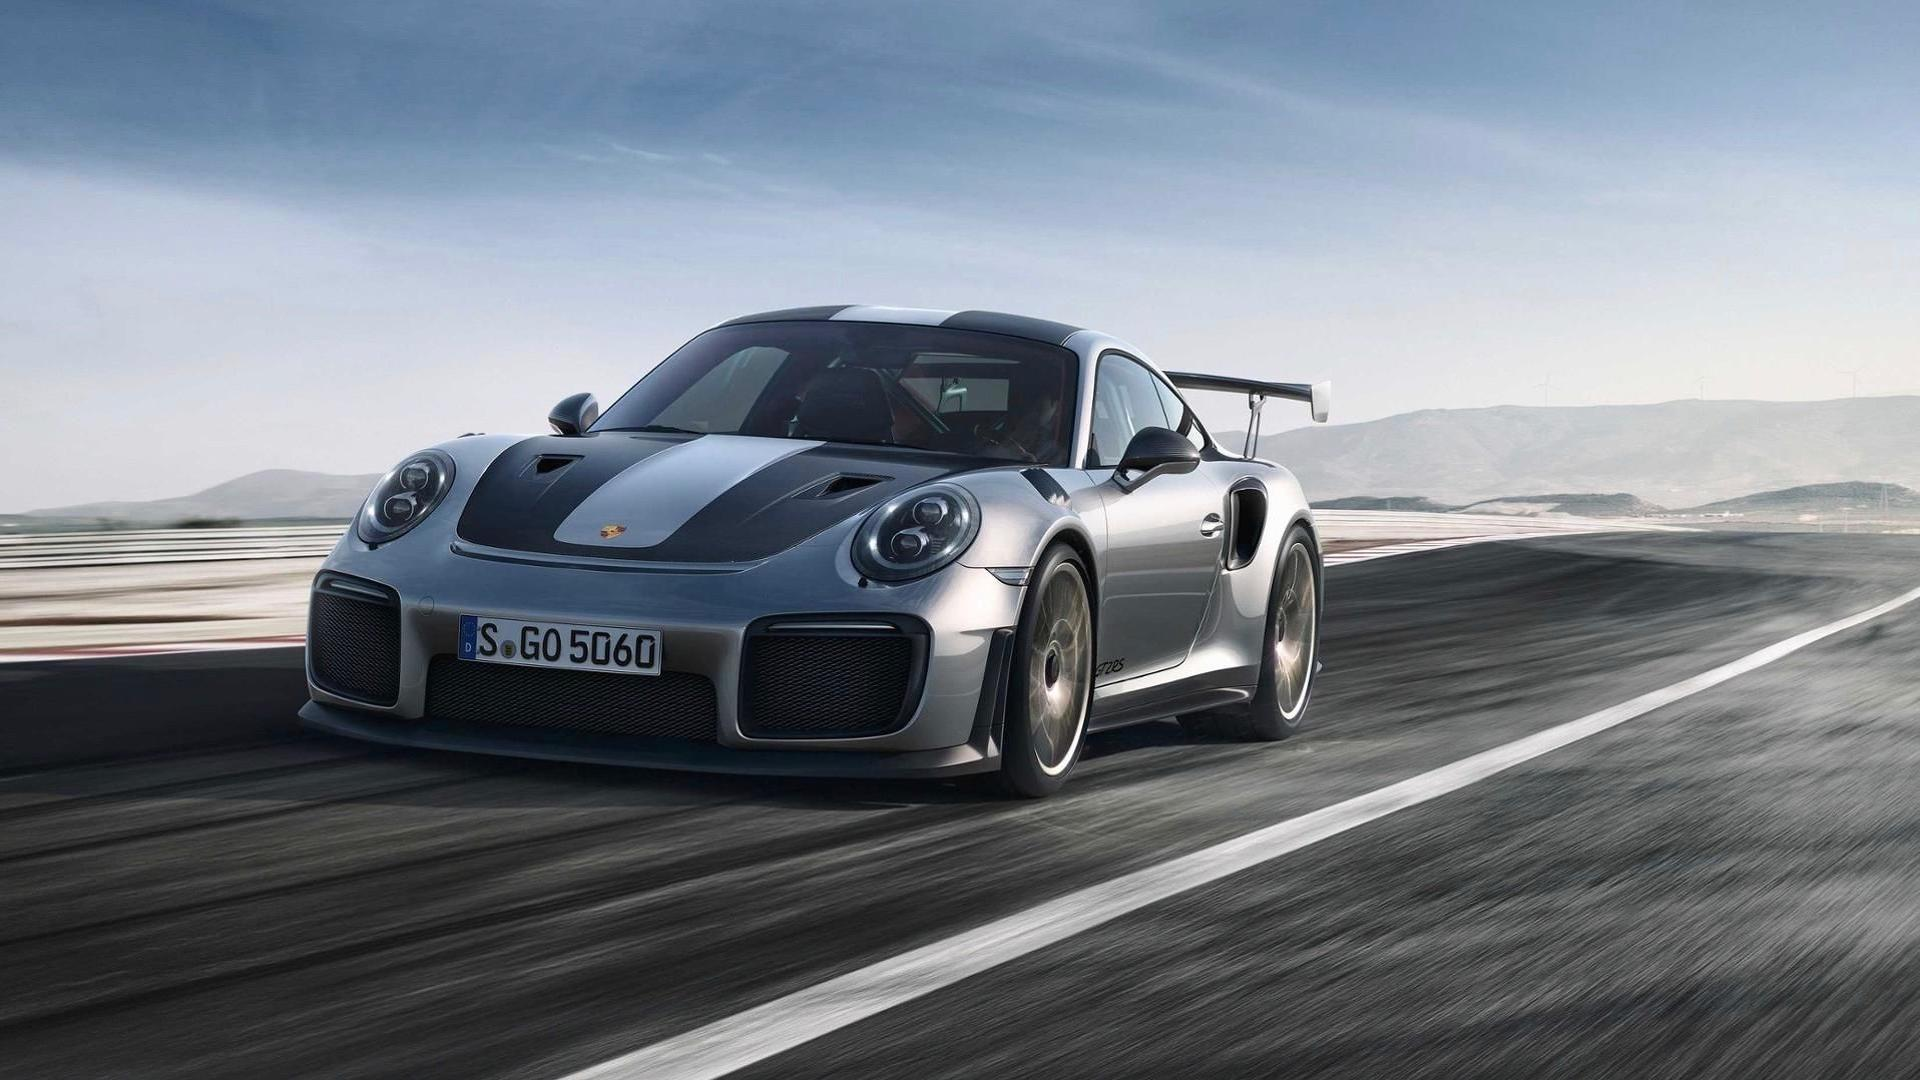 2018-porsche-911-gt2-rs Marvelous Porsche 918 Spyder Mark Webber Cars Trend